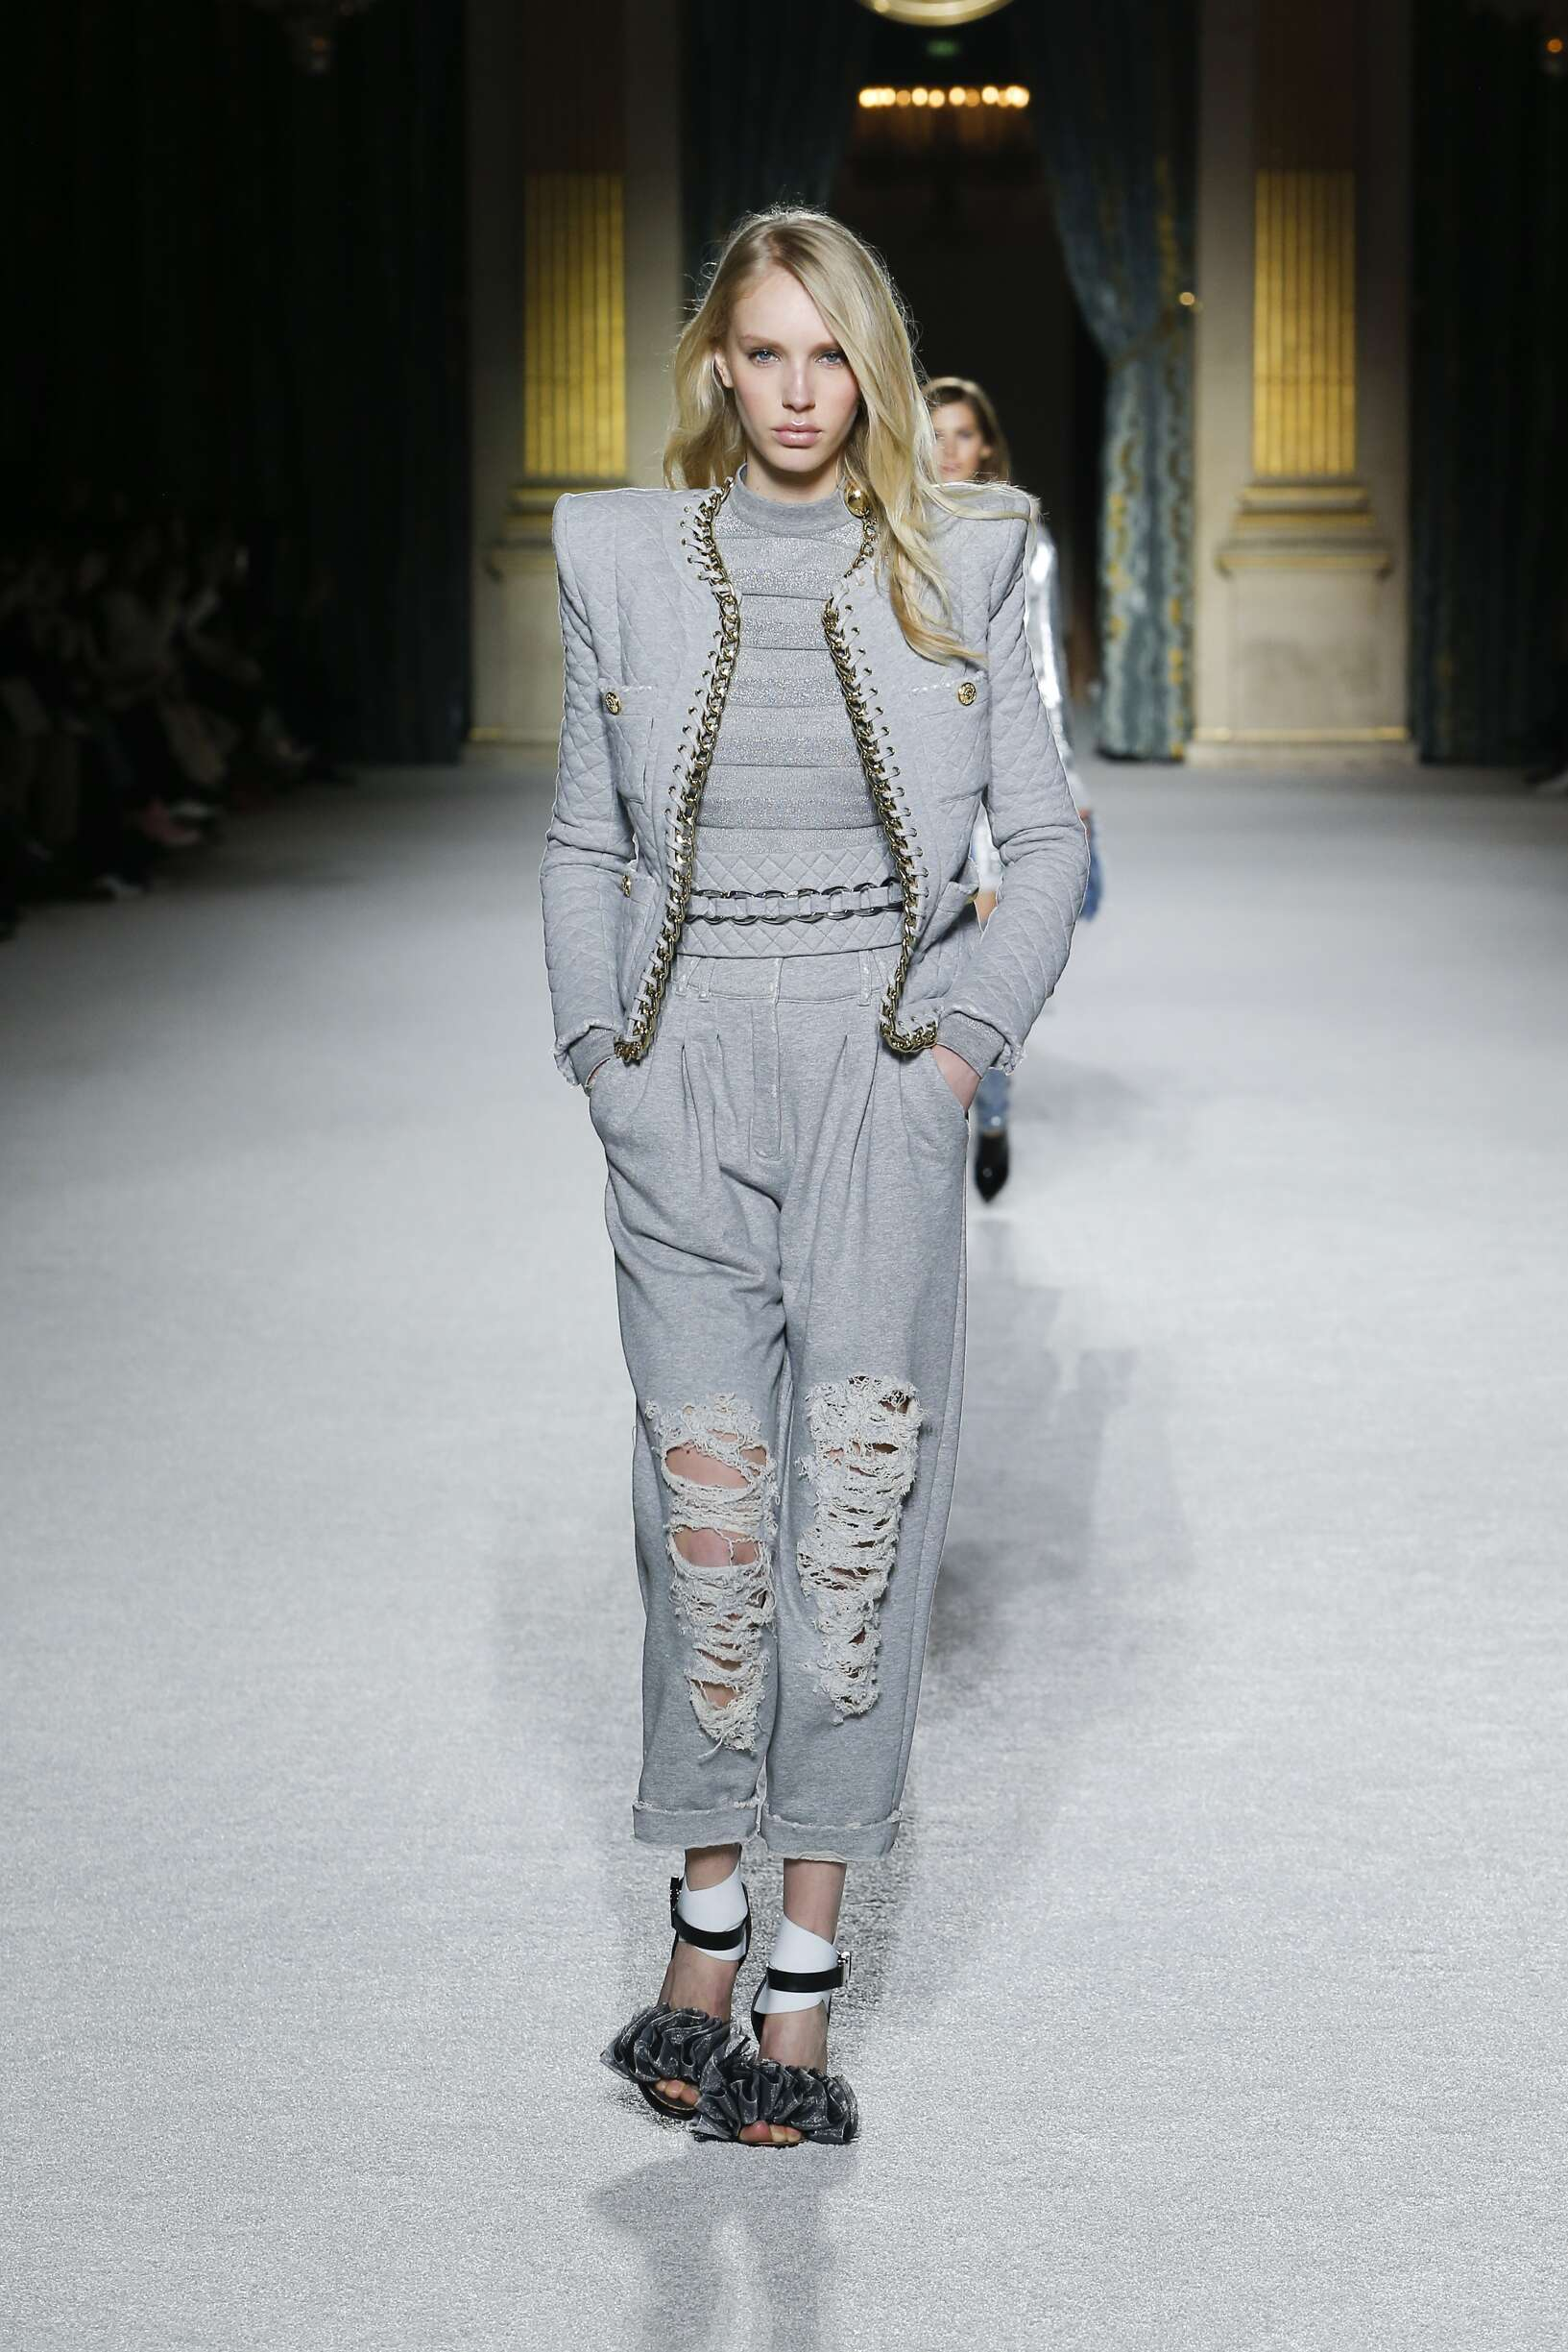 Fashion Model Balmain Catwalk